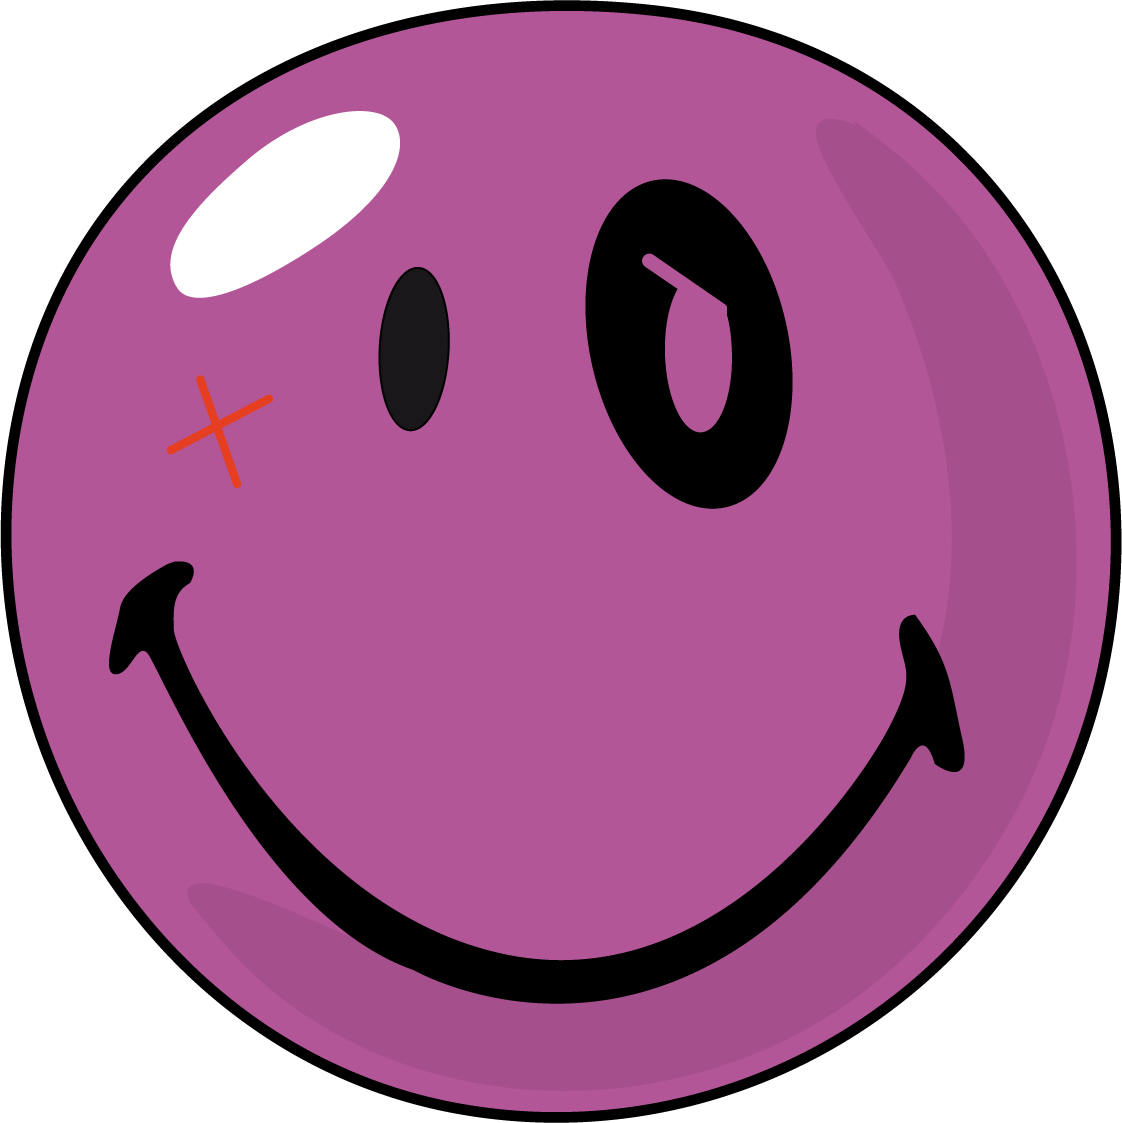 Clipart balloon head. Face smiley clipartly comclipartly